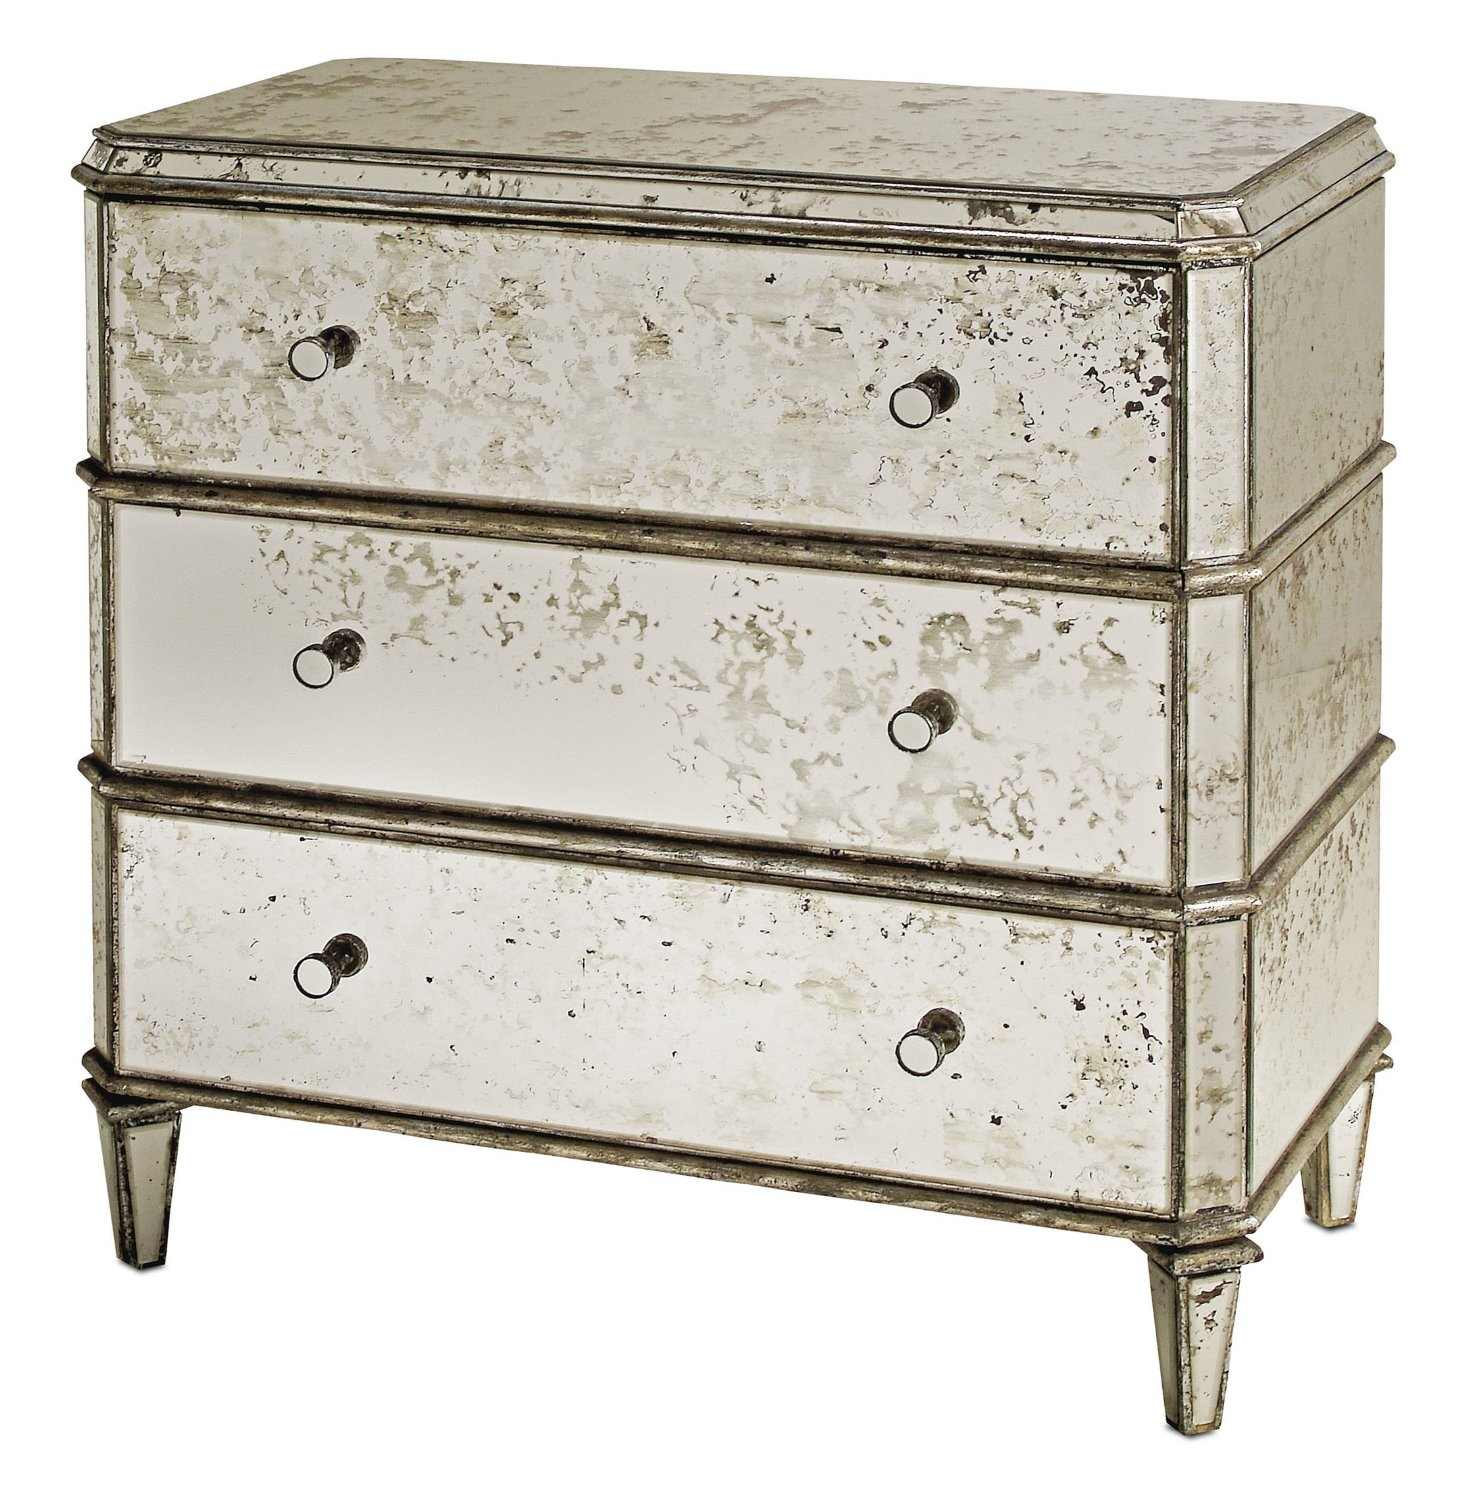 furniture upgrade your home with pretty mirrored dresser dressers mirrors table target buffet desk combo chest drawers mirrore drawer accent spindle legs threshold coffee